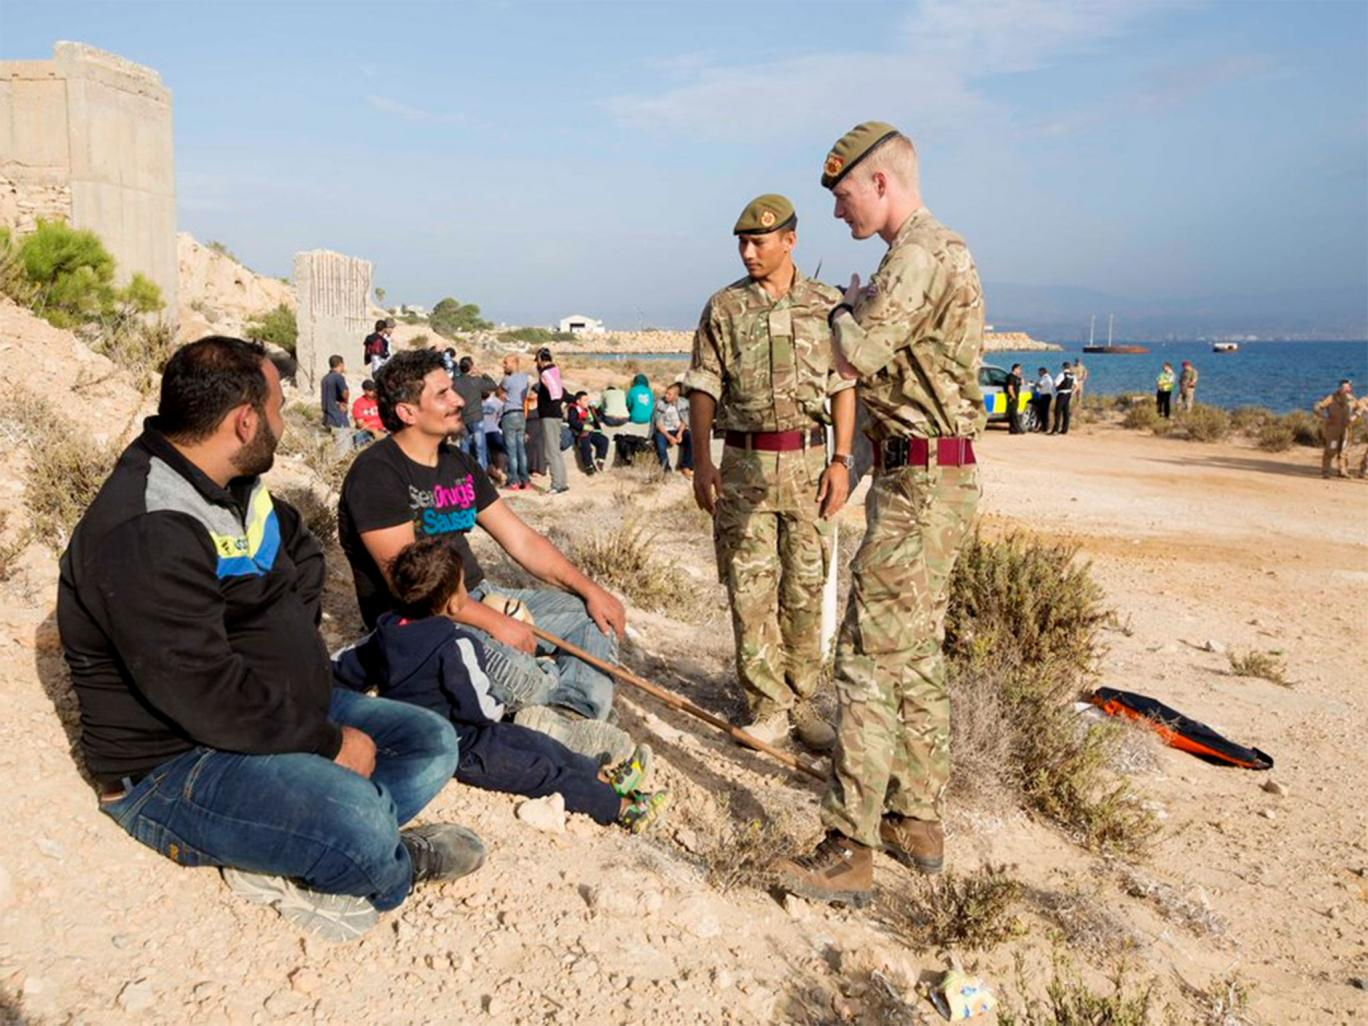 RAF bases refugees raise serious questions for Cypriot and British authorities